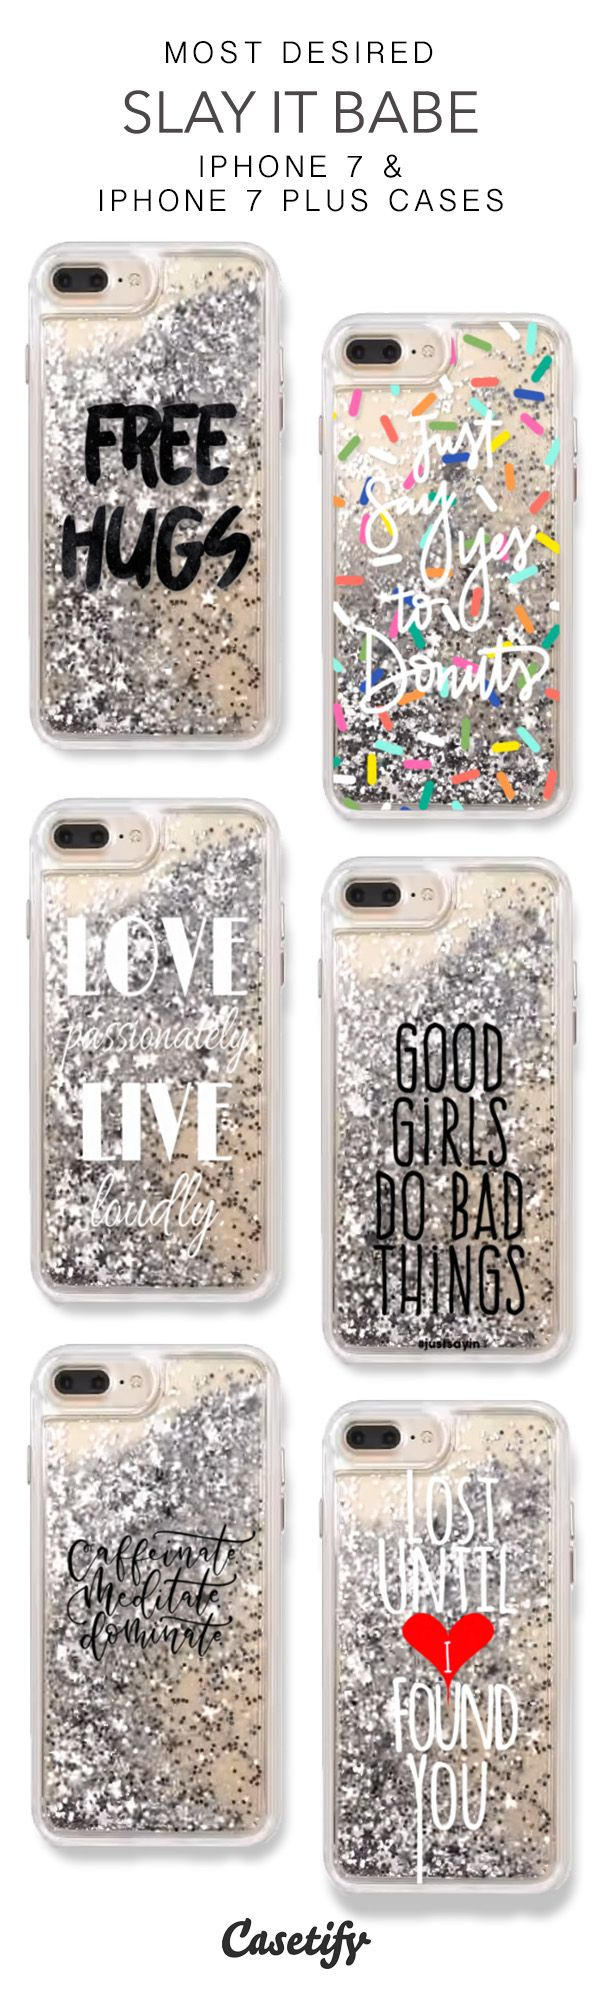 Most Desired Slay it Babe iPhone 7 Cases & iPhone 7 Plus Cases. More Protective Liquid Glitter Quotes iPhone case here > https://www.casetify.com/en_US/collections/iphone-7-glitter-cases#/?vc=KJzkHoNH89